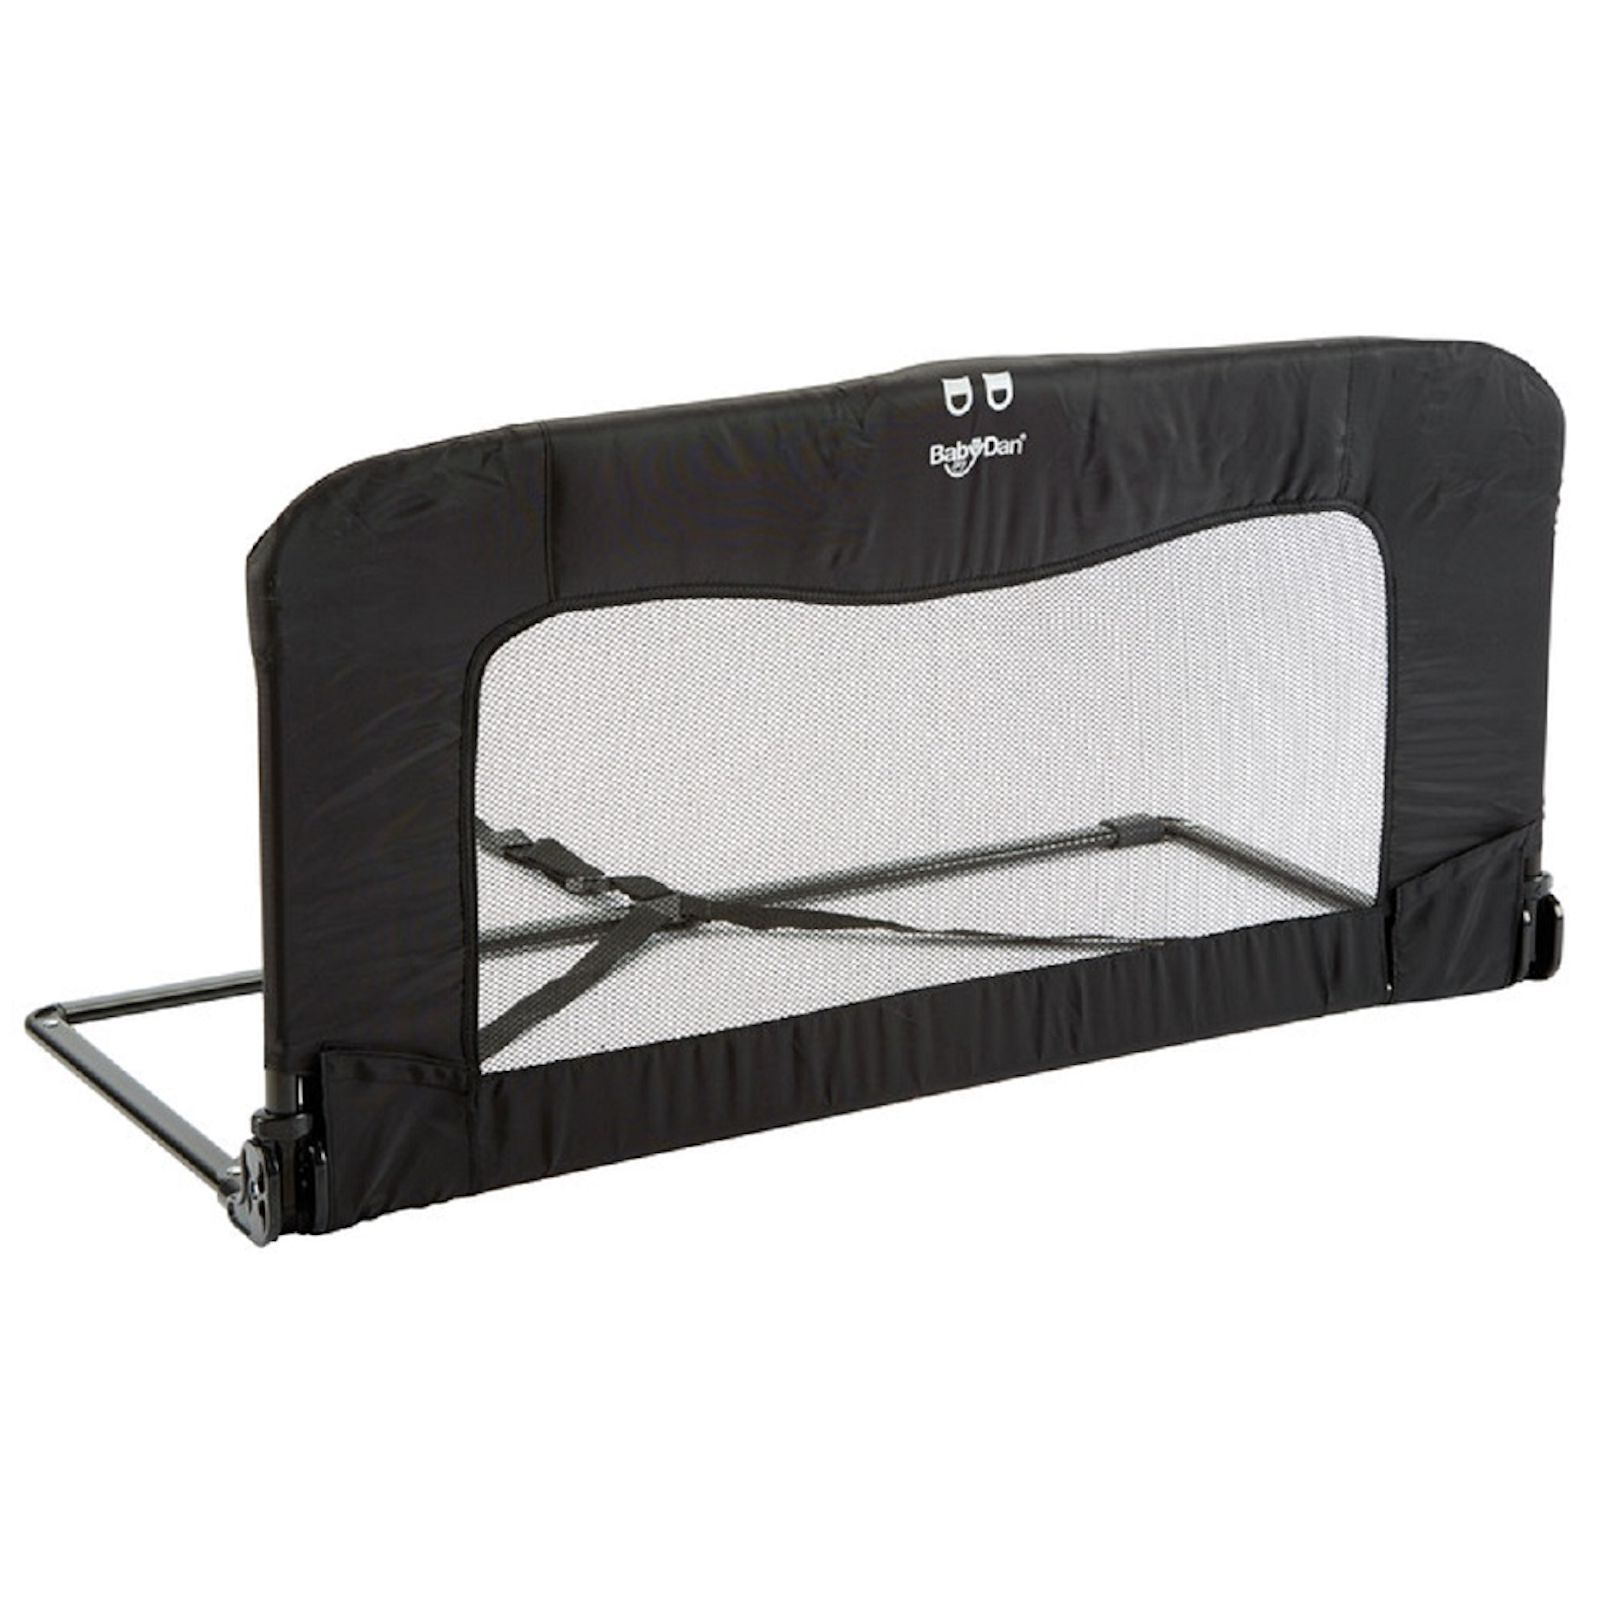 NEW BABYDAN BLACK FOLDING BED RAIL SAFETY GUARD TO FIT JUNIOR /& TODDLER BEDS